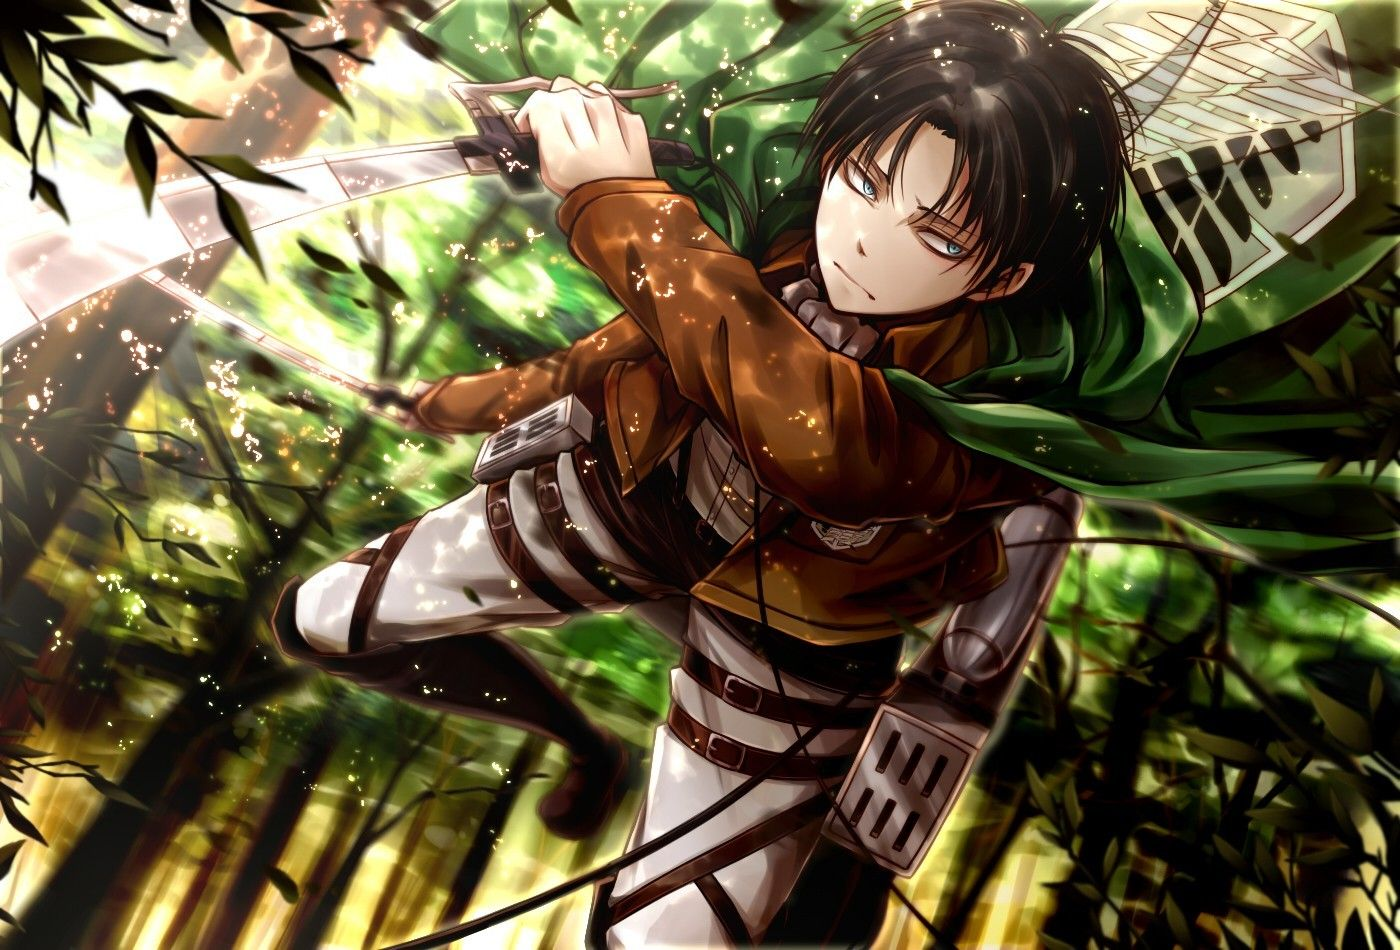 Mobile And Desktop Wallpaper Hd Attack On Titan Levi Attack On Titan Attack On Titan Anime